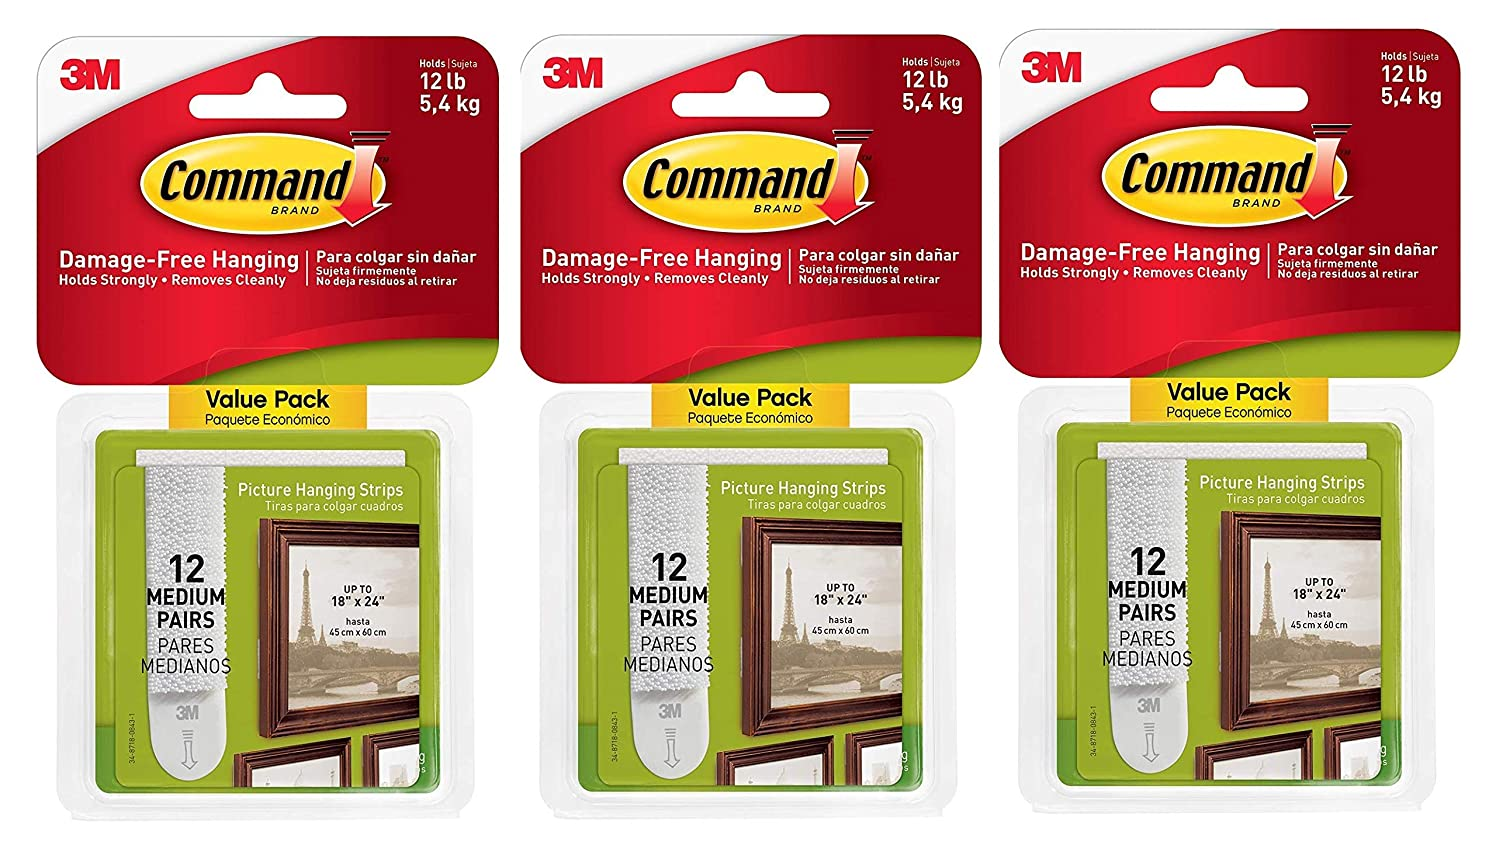 Command Picture Hanging Strips, Medium, White, 12 Pairs per Pack, Sold as 3 Pack, 36 Pairs Total (17204-12ES)